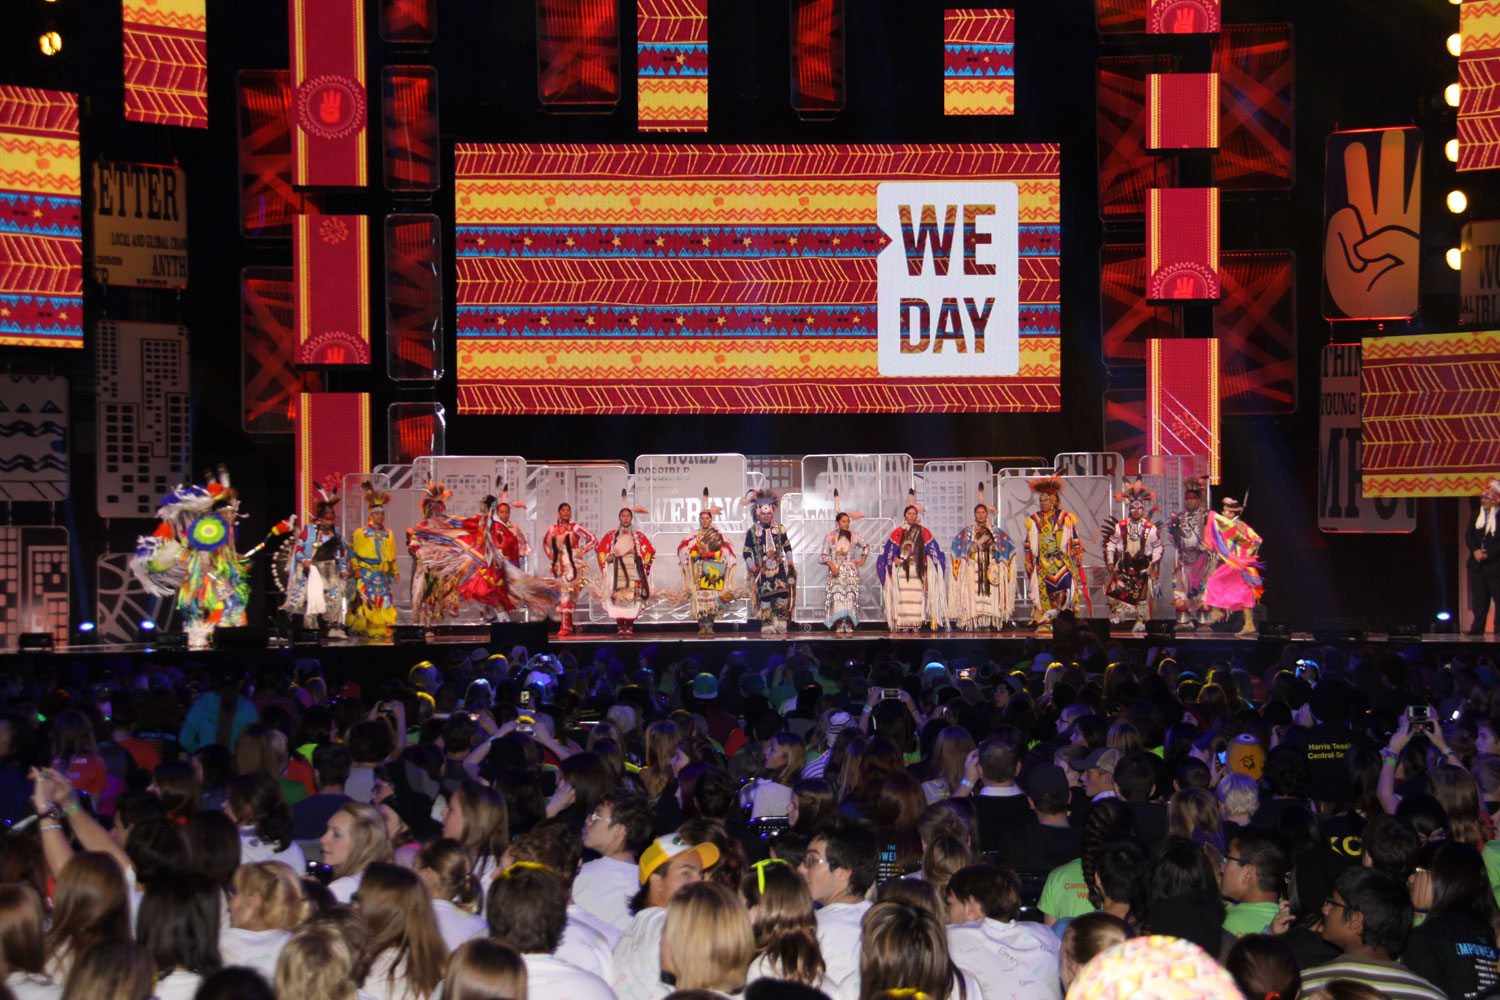 We Day in Saskatoon